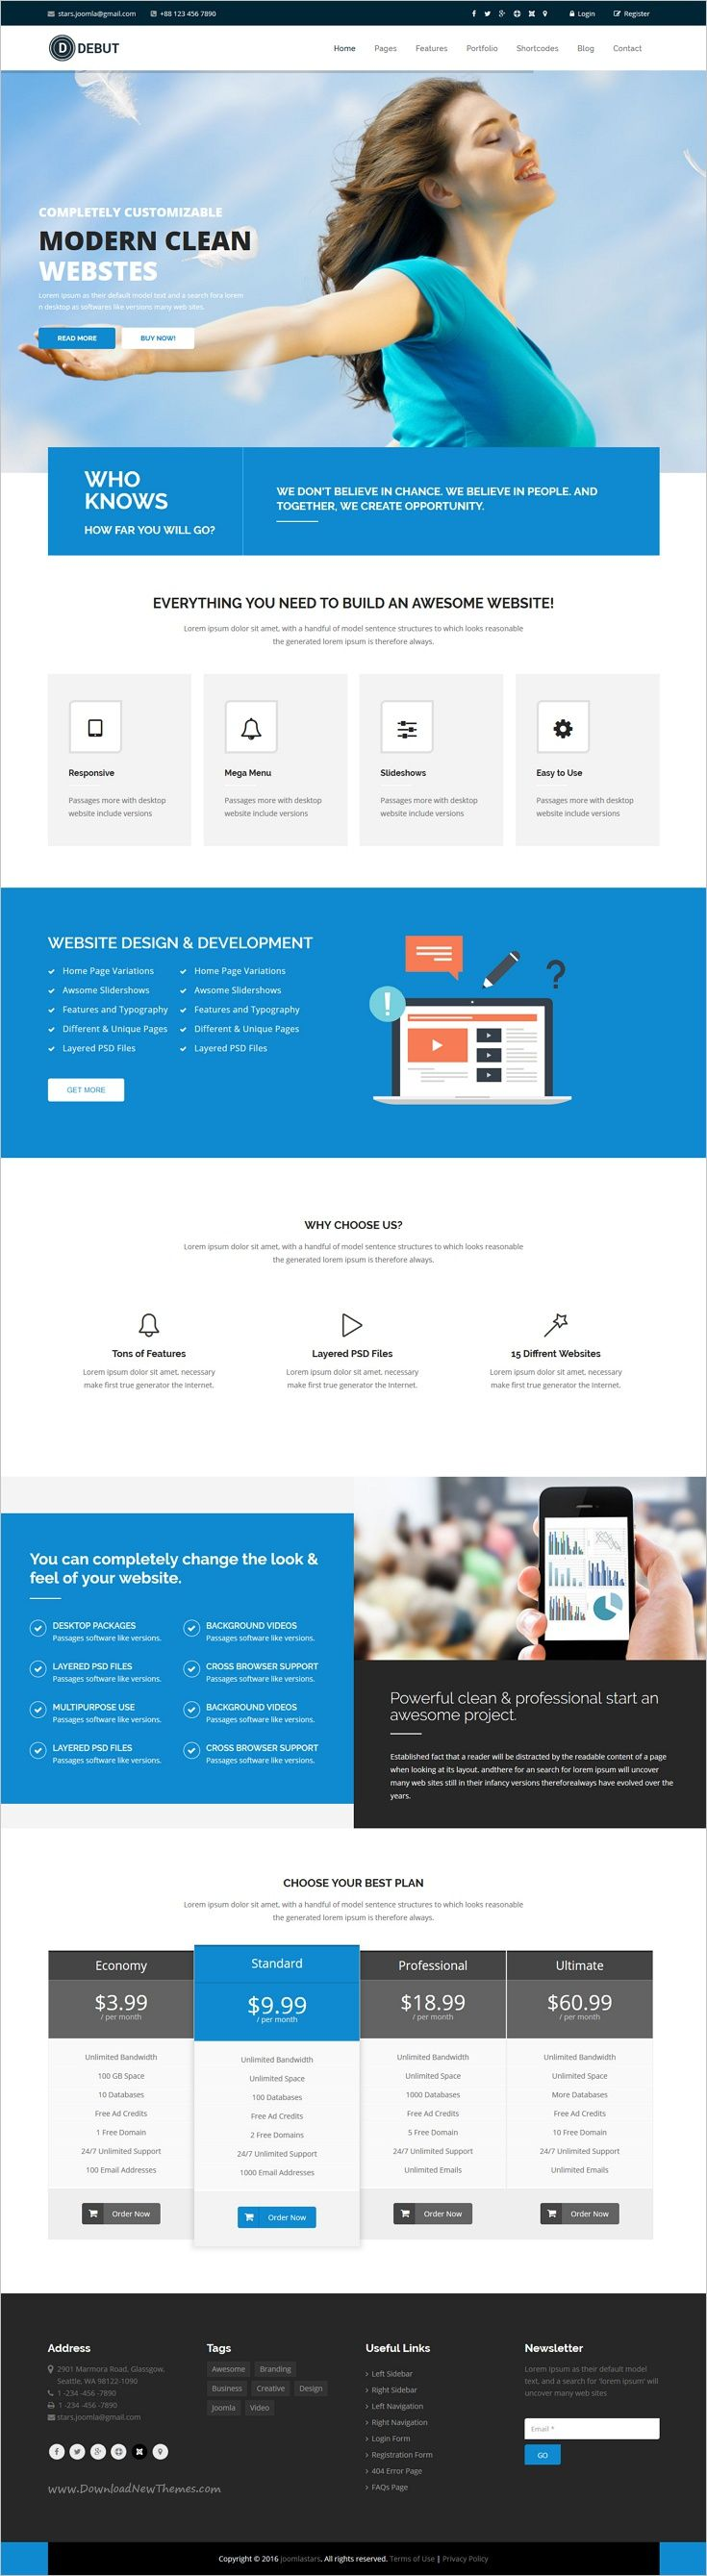 Debut is a modern and professional responsive #Joomla template for awesome #corporate websites with 11+ multipurpose homepage layouts download now➩ https://themeforest.net/item/debut-the-multipurpose-responsive-joomla-theme/19077114?ref=Datasata